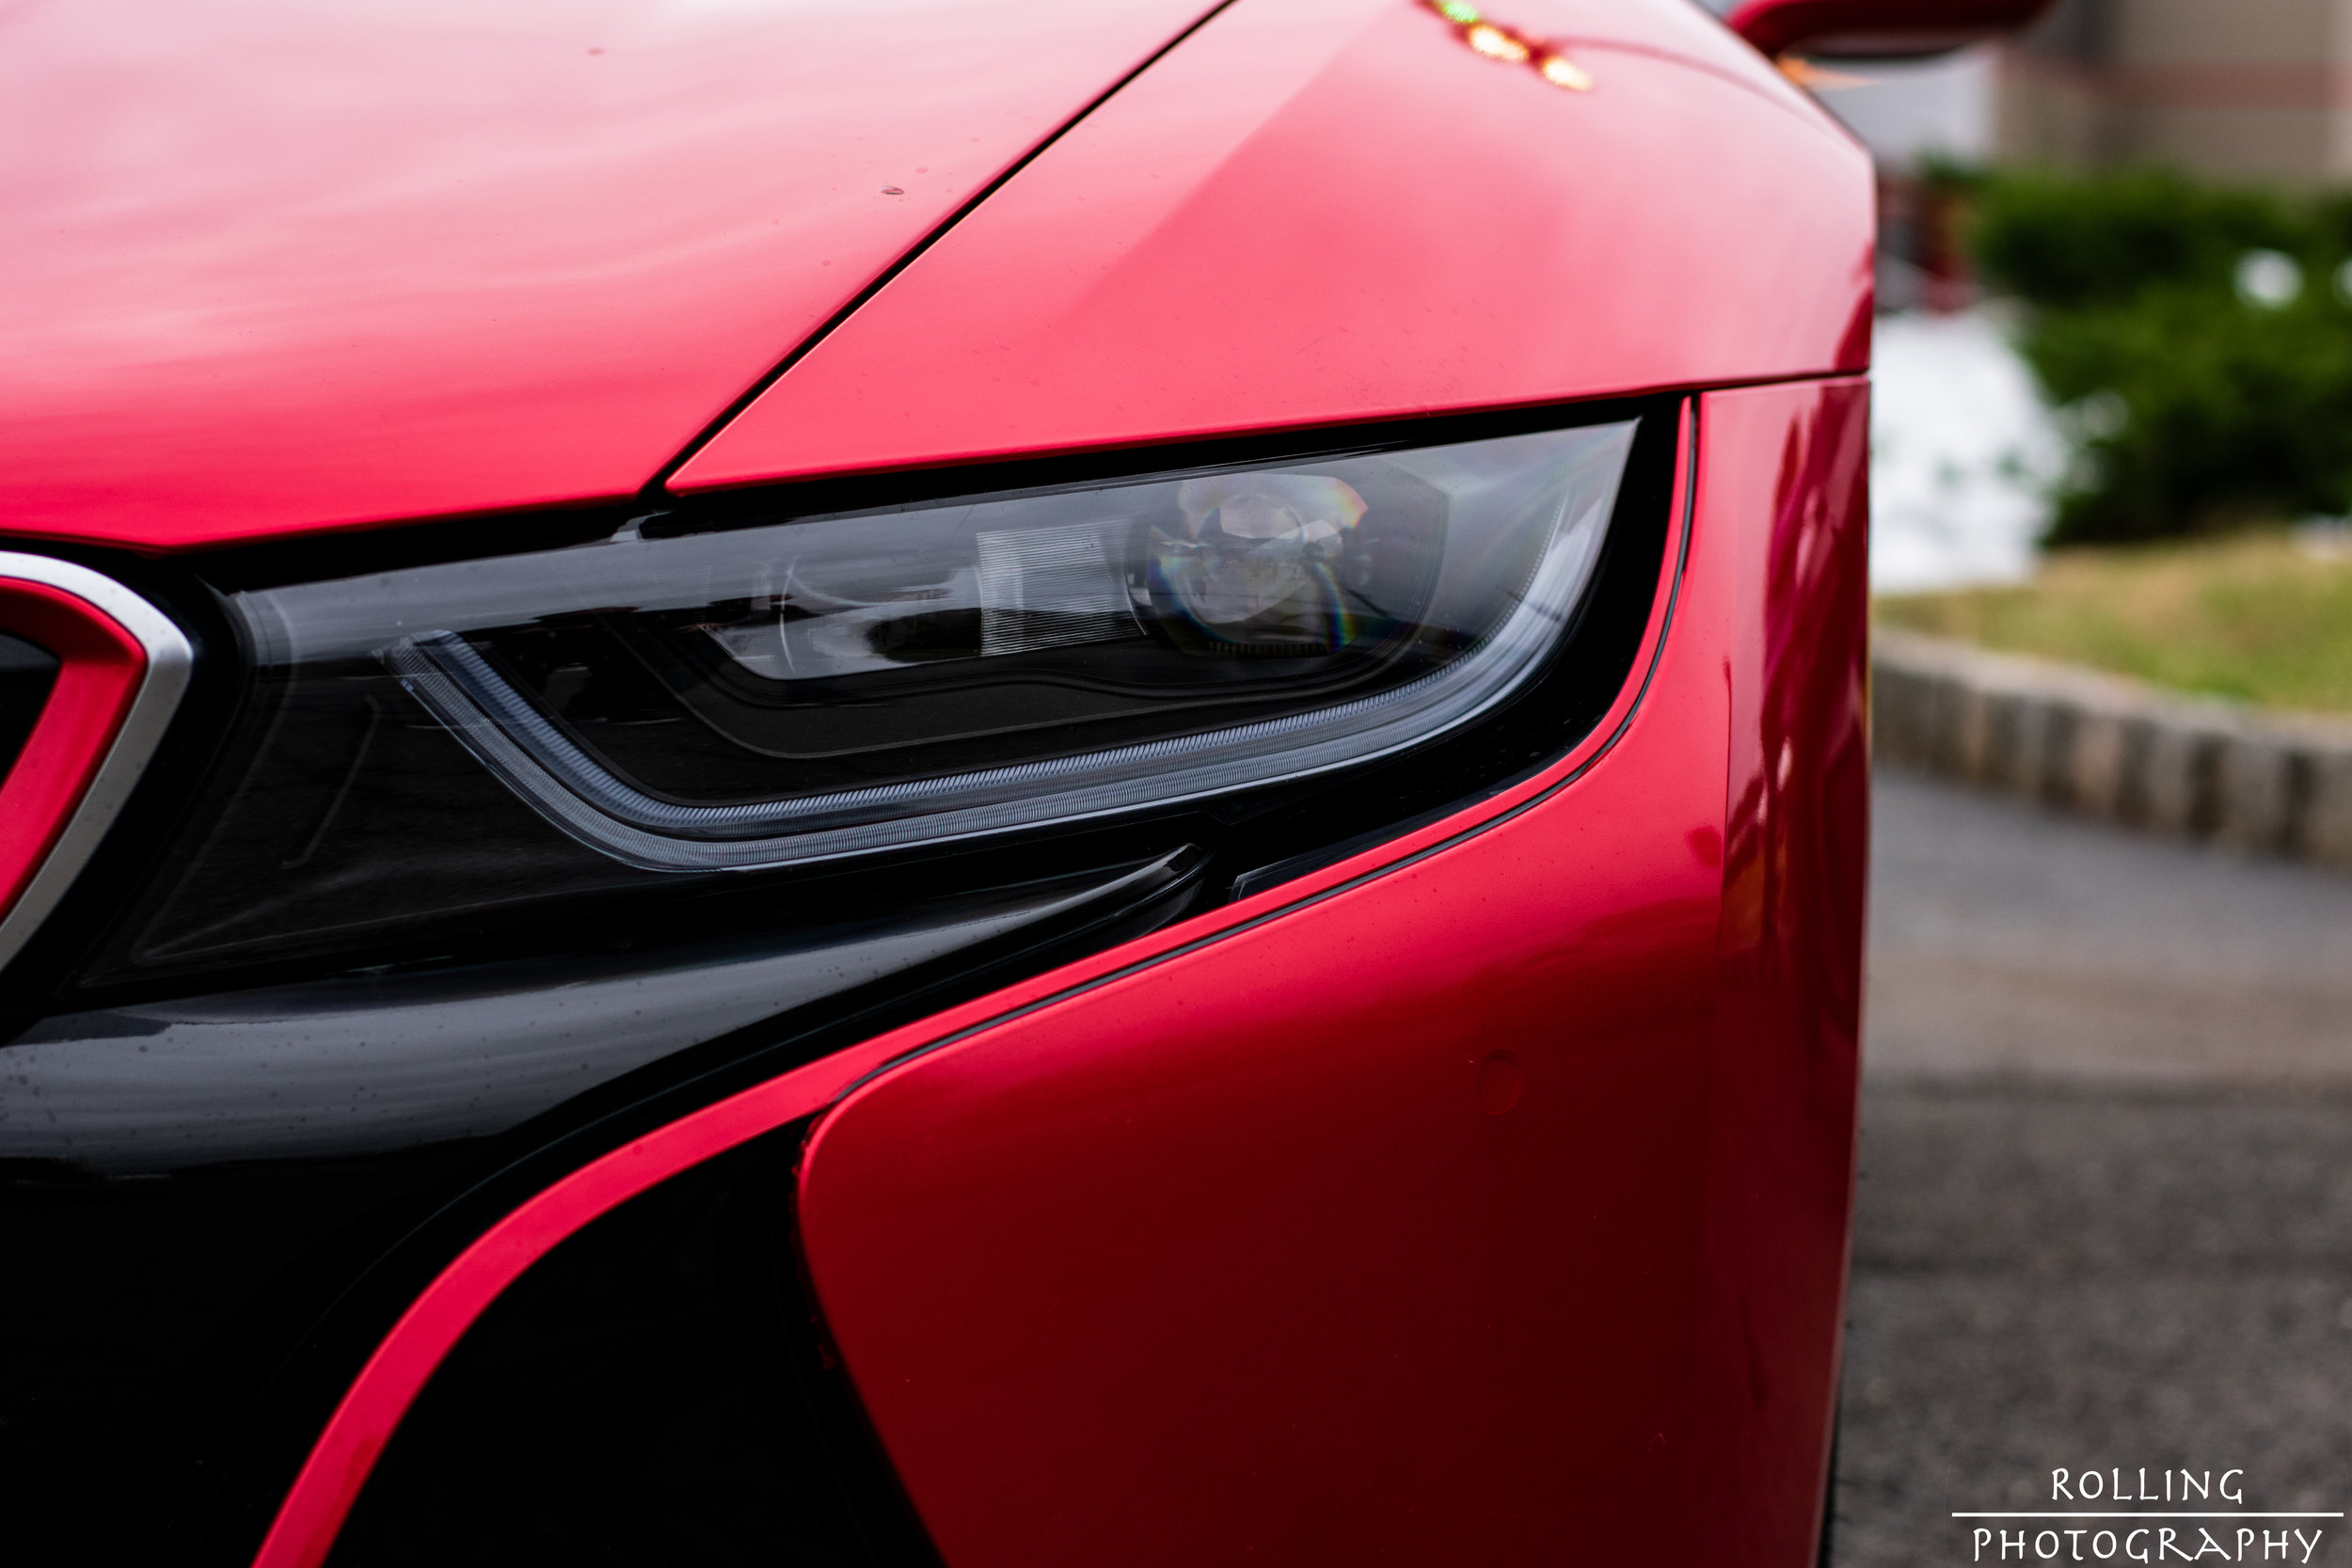 BMW i8  @imrbmw   ISO 200, 50mm, f / 3.5 Shutter Speed 1/1000